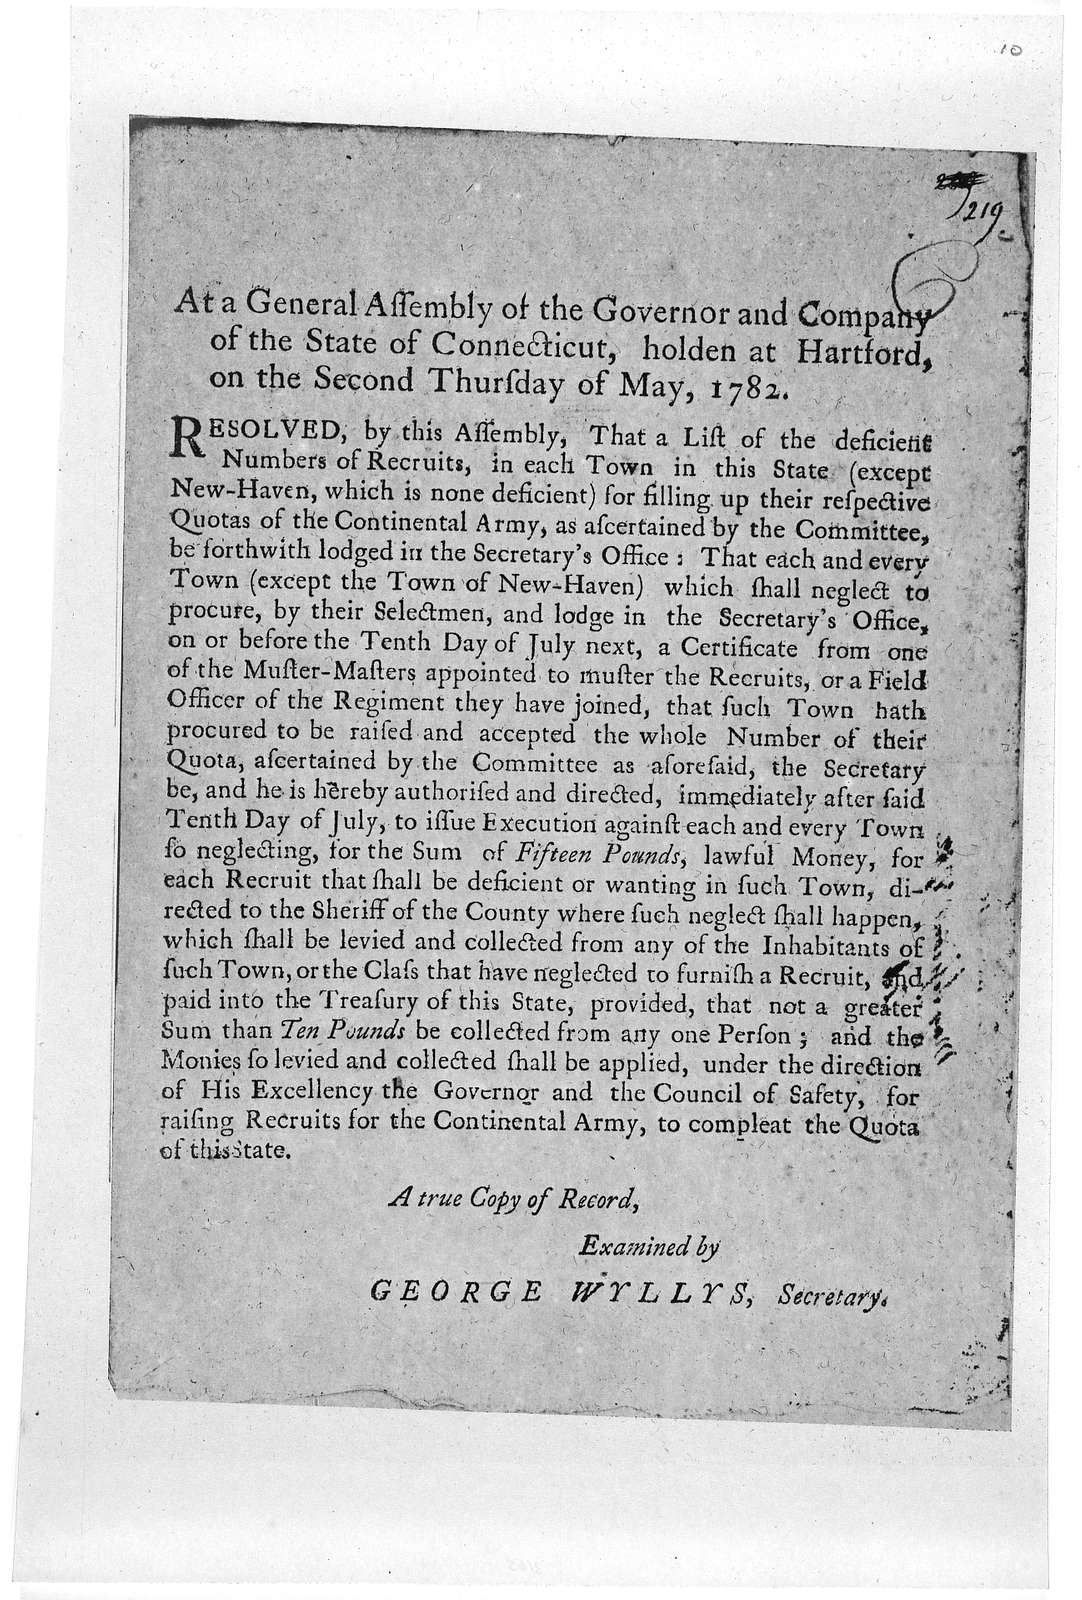 At a General Assembly of the Governor and company of the State of Connecticut, holden at Hartford, on the second Thursday of May, 1782. Resolved by this Assembly, that a list of the deficient numbers of recruits, in each town in this state (exce